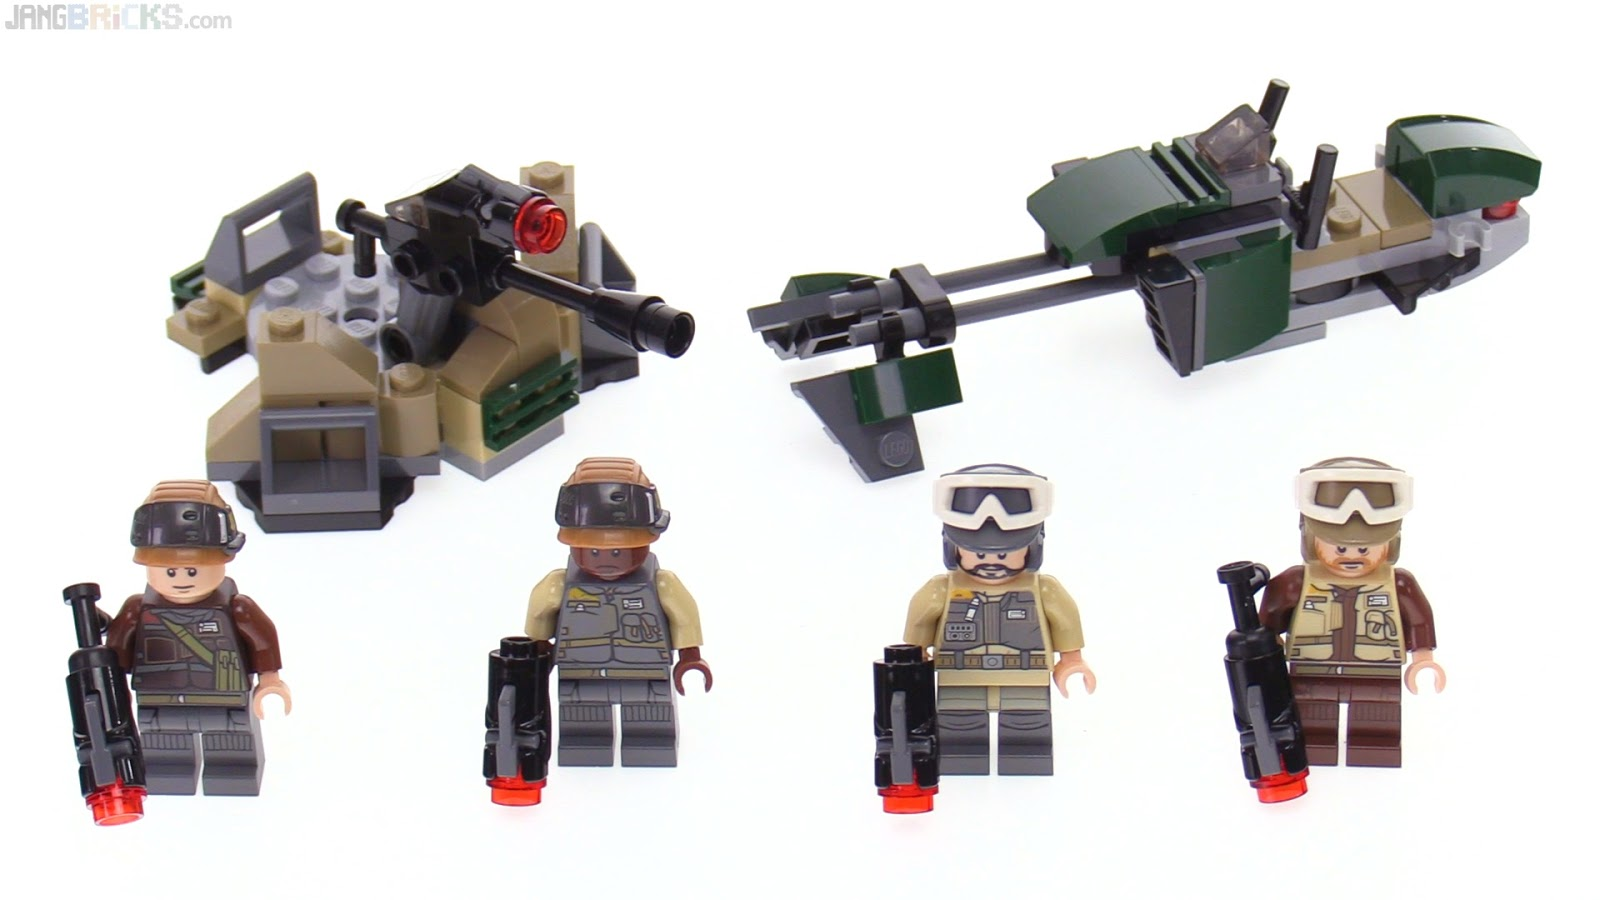 LEGO Star Wars Rogue One battle / troop pack reviews